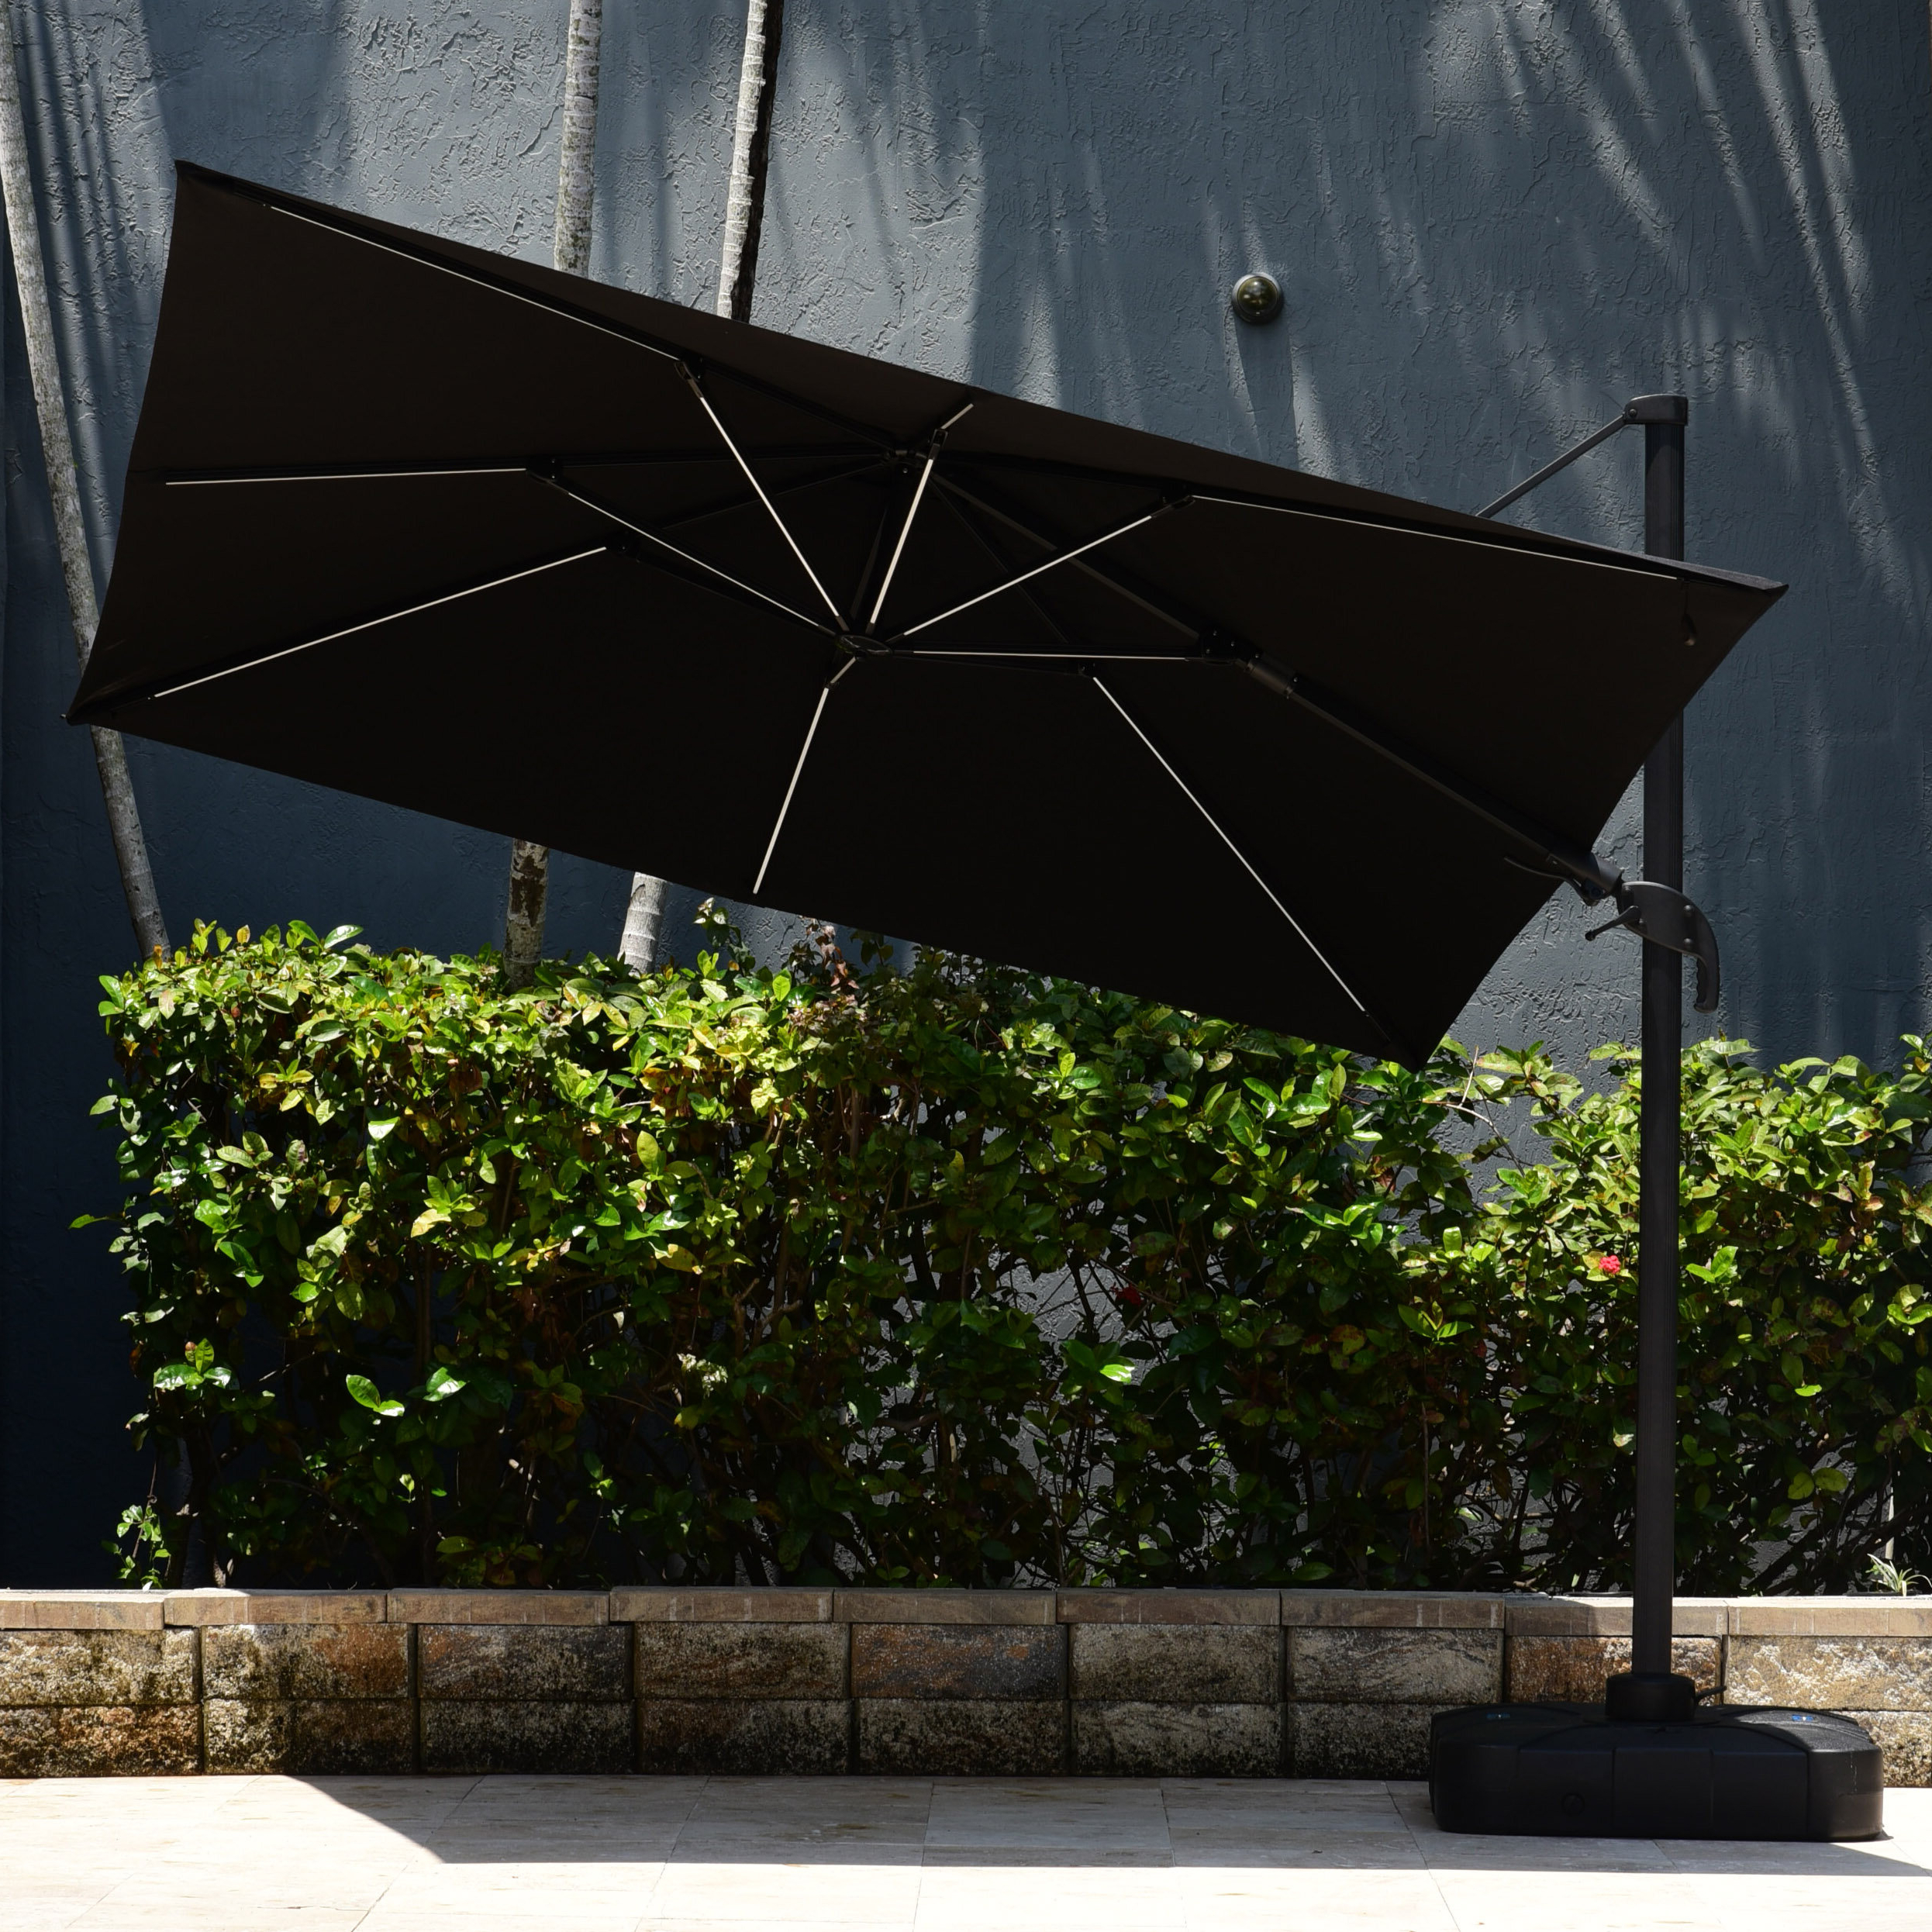 Macclesfield Square Cantilever Umbrellas Throughout Most Recently Released Spitler 10' Square Cantilever Umbrella (View 12 of 20)